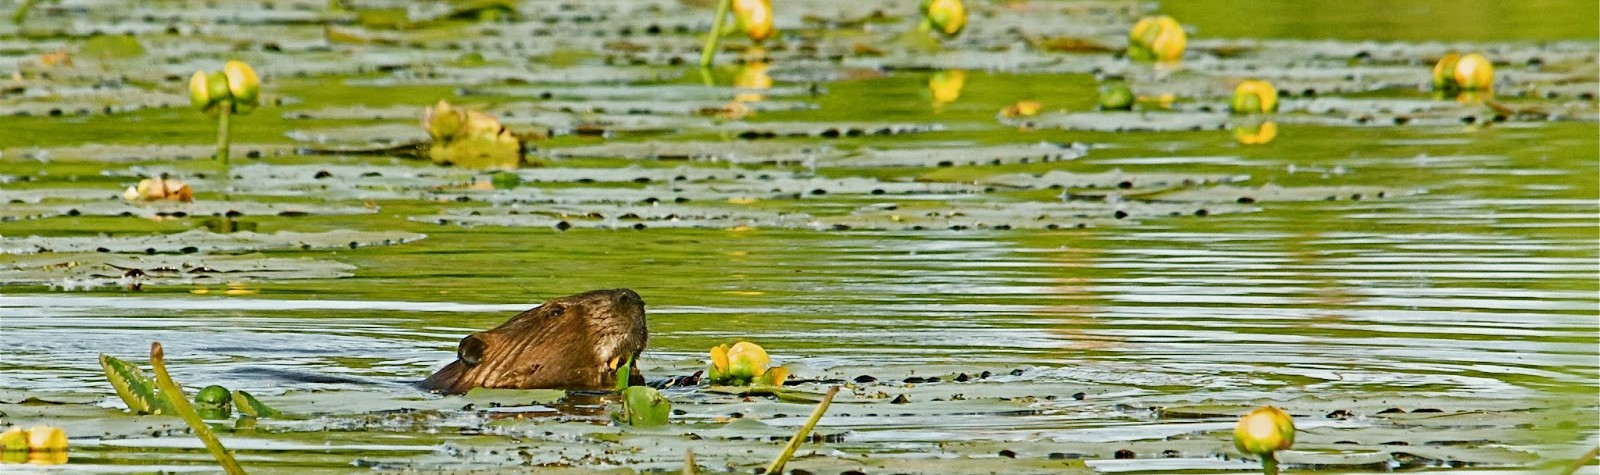 Beaver Eating Water Lily